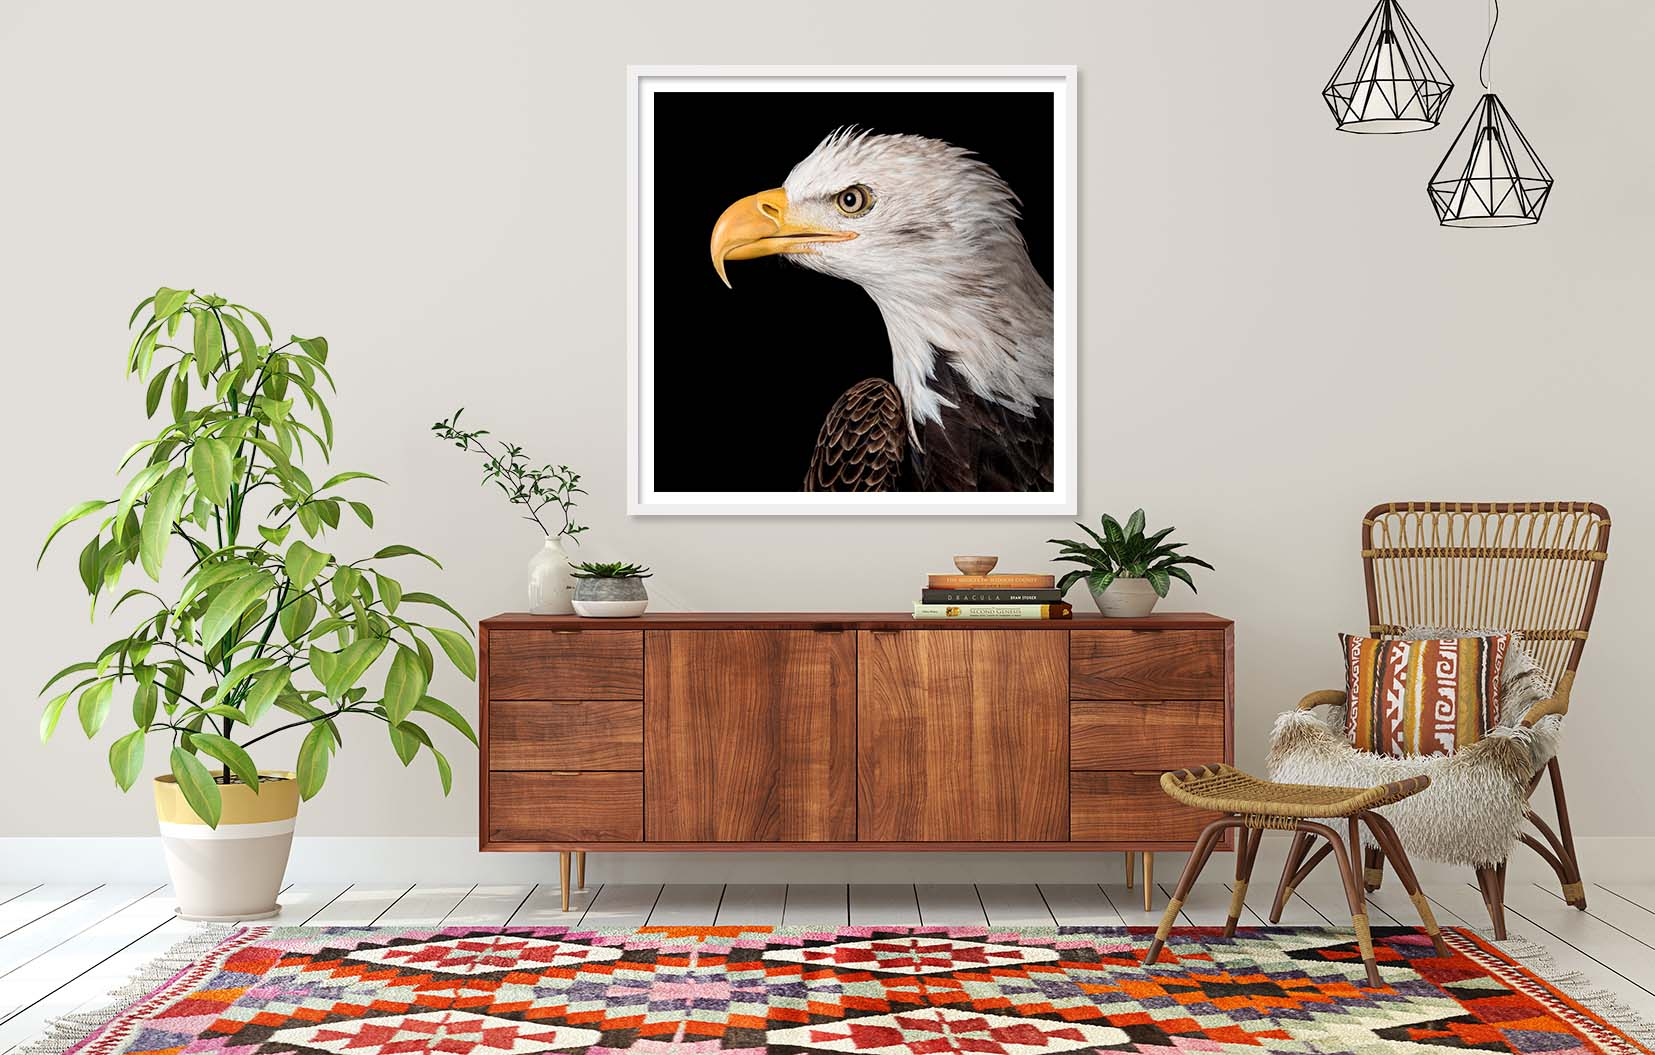 Colour photograph of a bald eagle, framed and on the wall. Limited edition prints of birds by fine art photographer Paul Coghlin FBIPP.